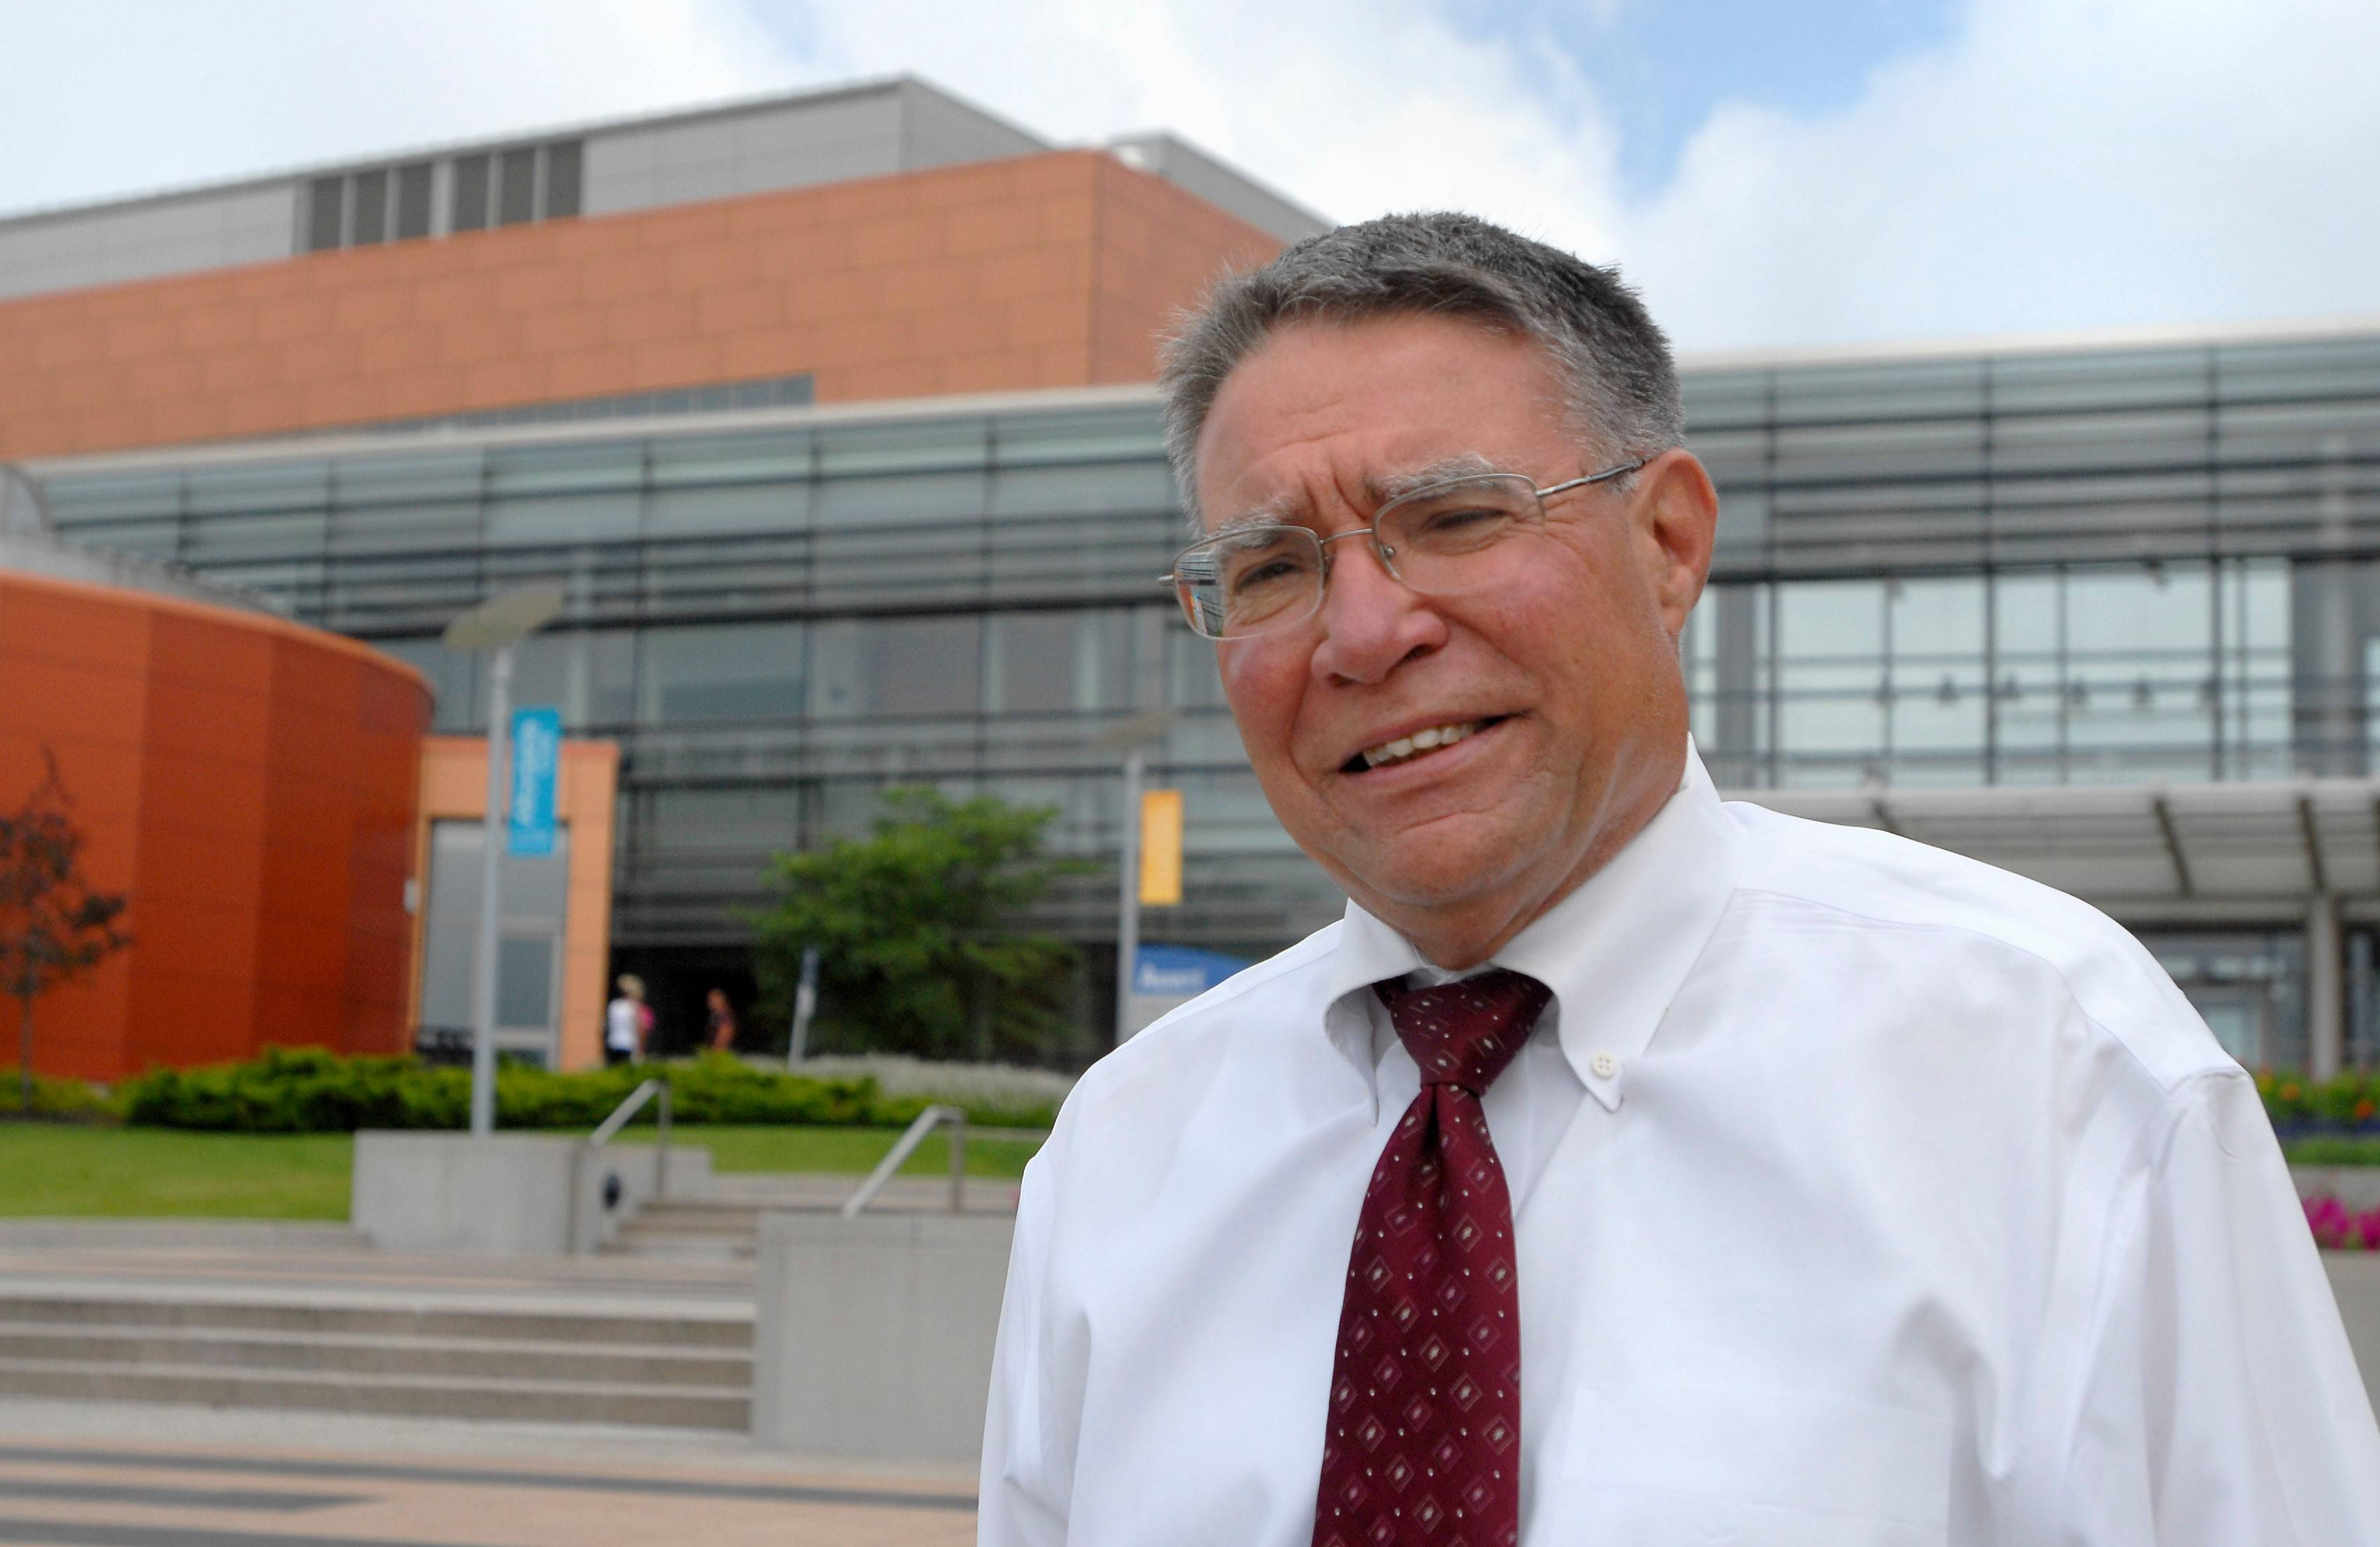 Despite College of DuPage voiding Breuder contract, others have similar deals